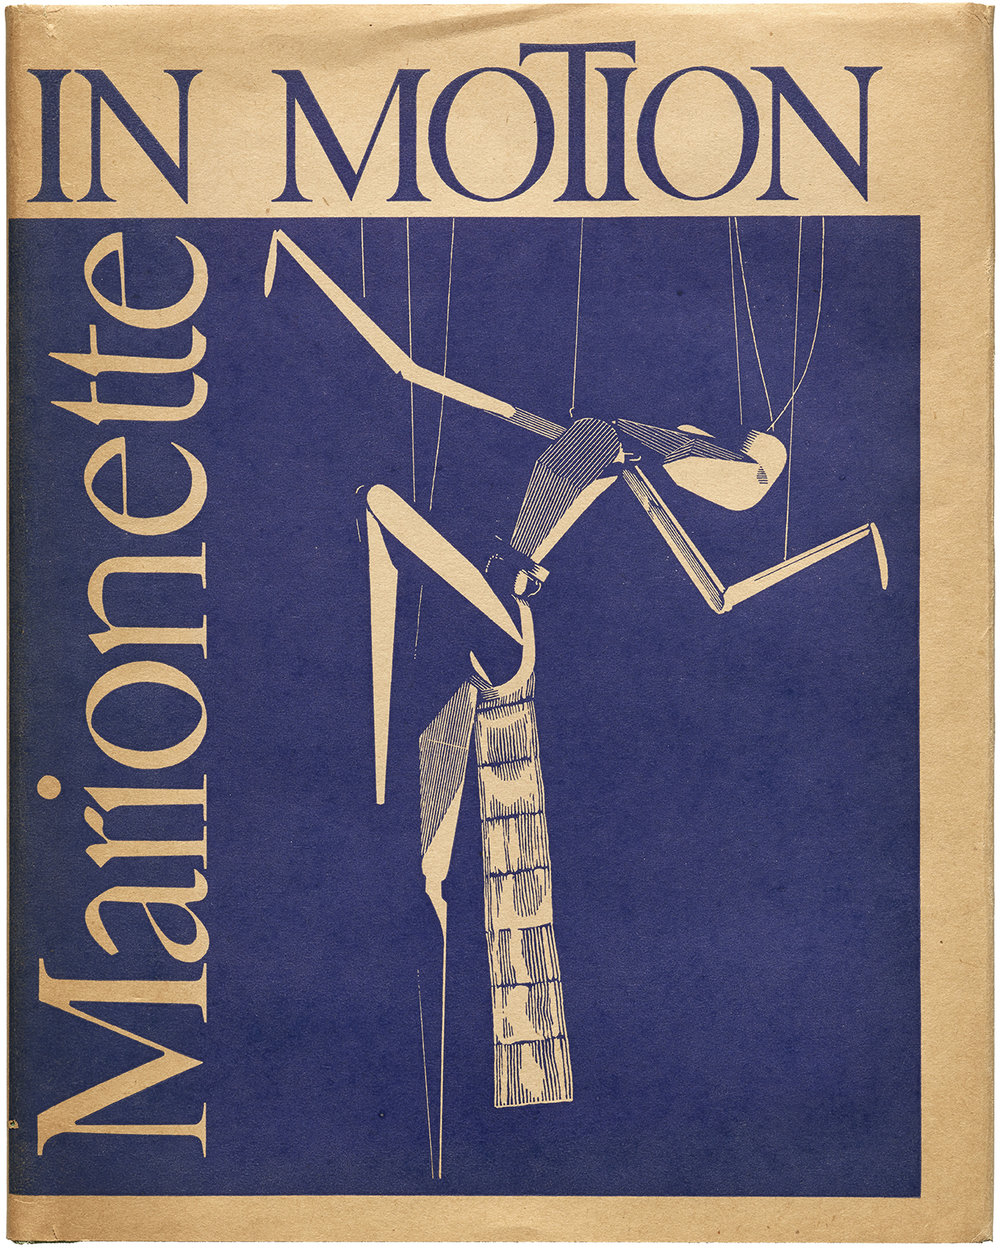 Cover for Marionette in Motion: The Püterschein System Diagrammed, Described (Detroit: Puppetry Imprints, 1939). Collection of Letterform Archive.